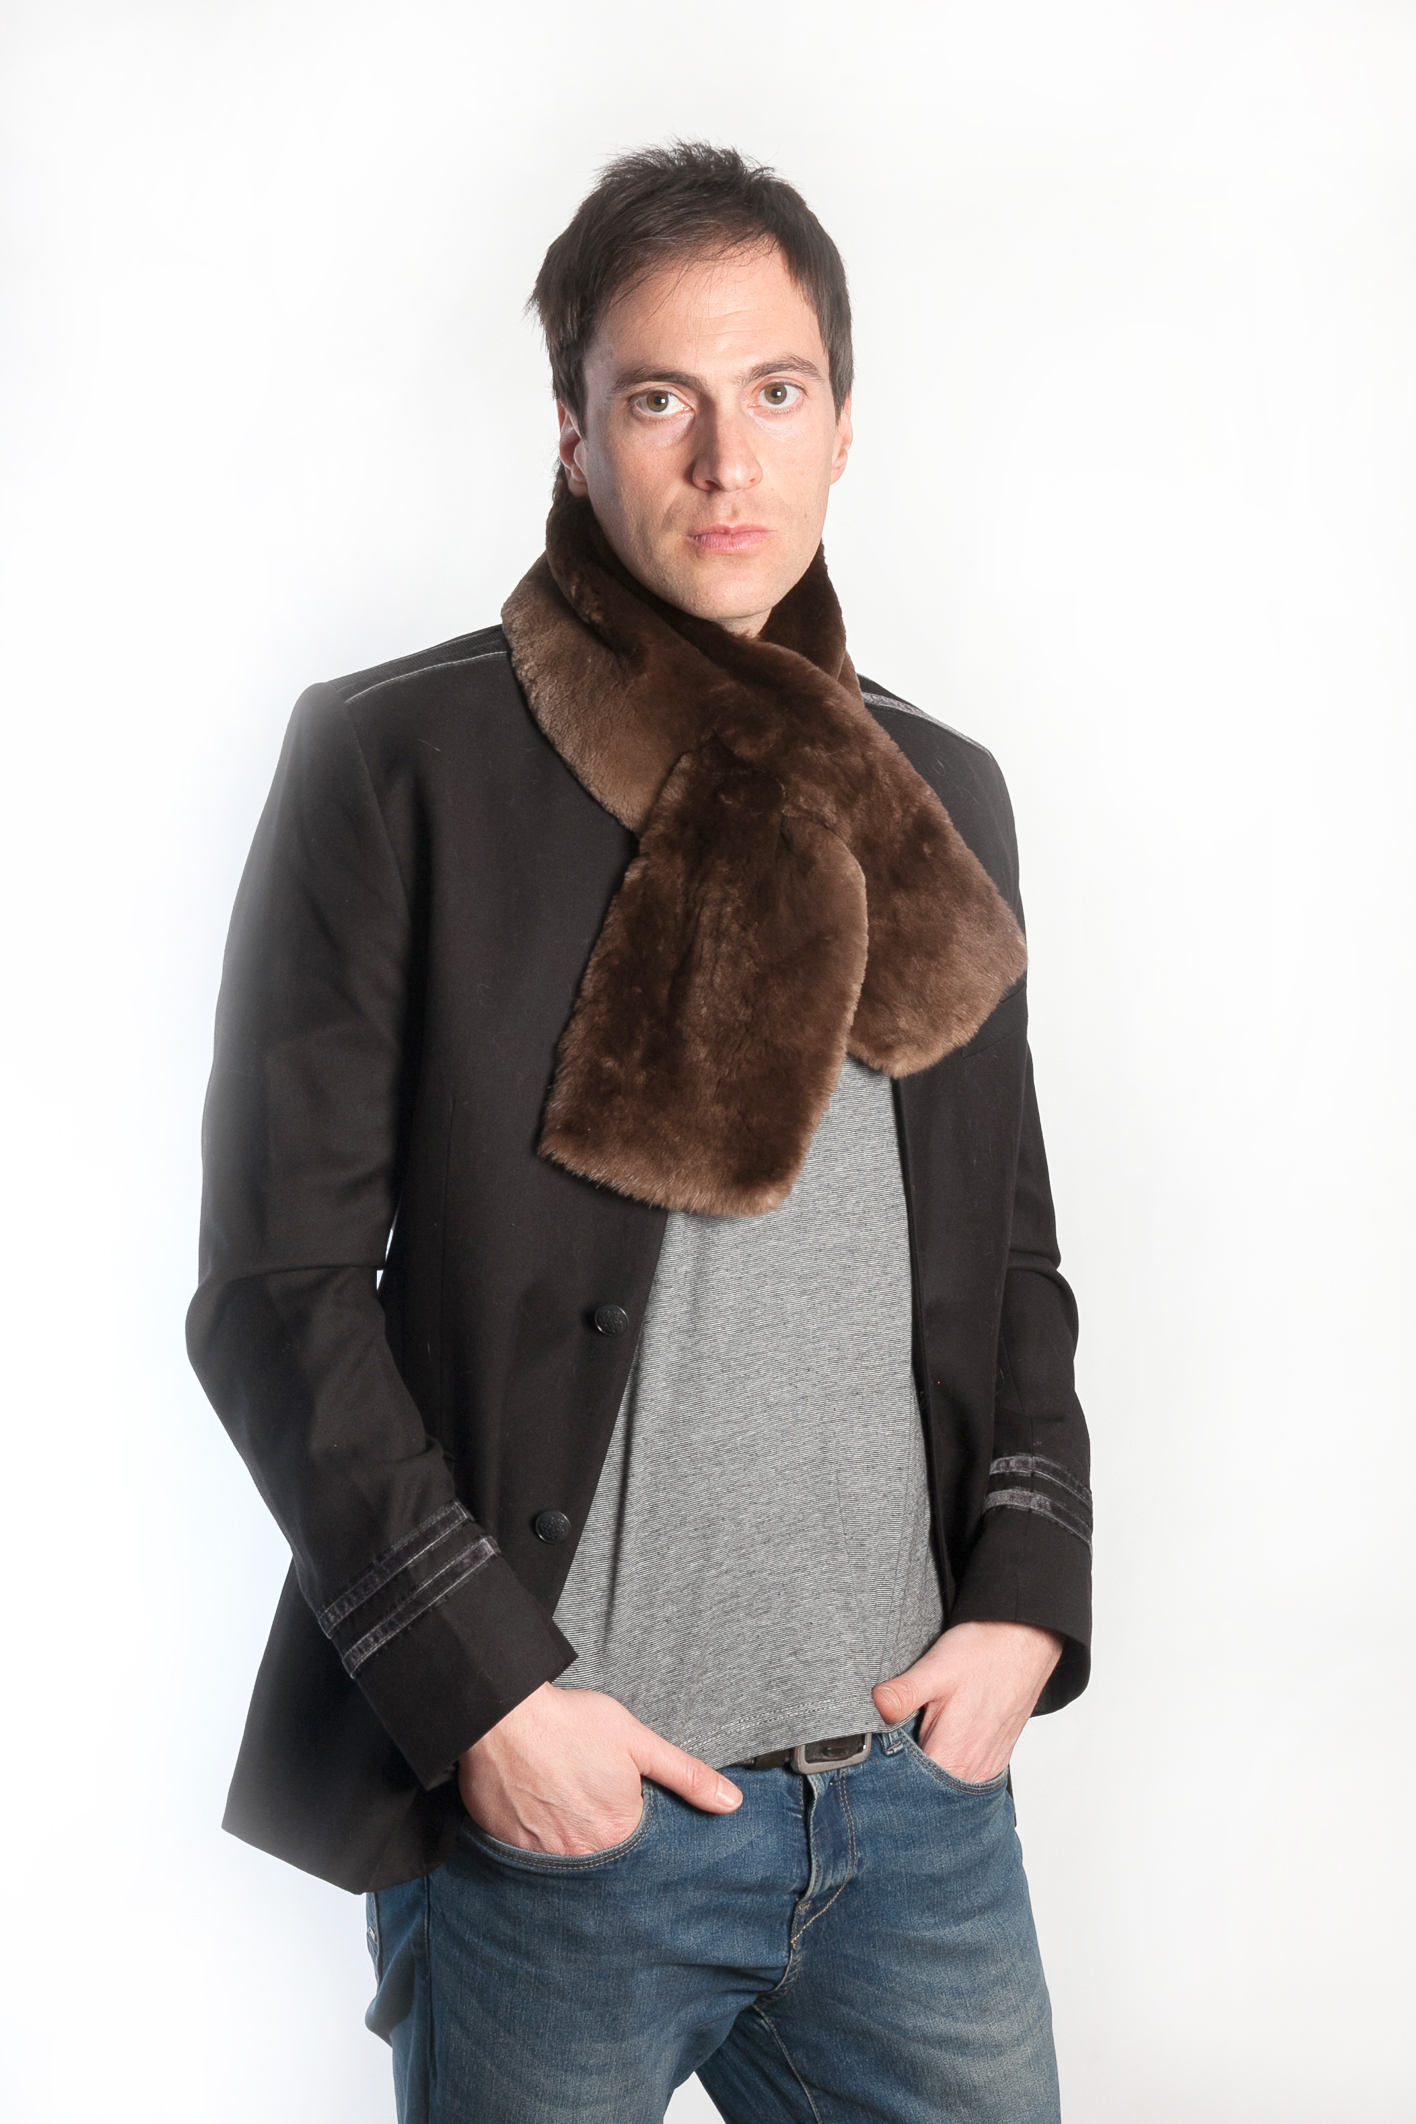 7627dee8da2bf ... scarves of the Canadian beaver, both for male and female. The fur isn't  just warm, but very soft and shiny as well. The colors range from light  brown, ...